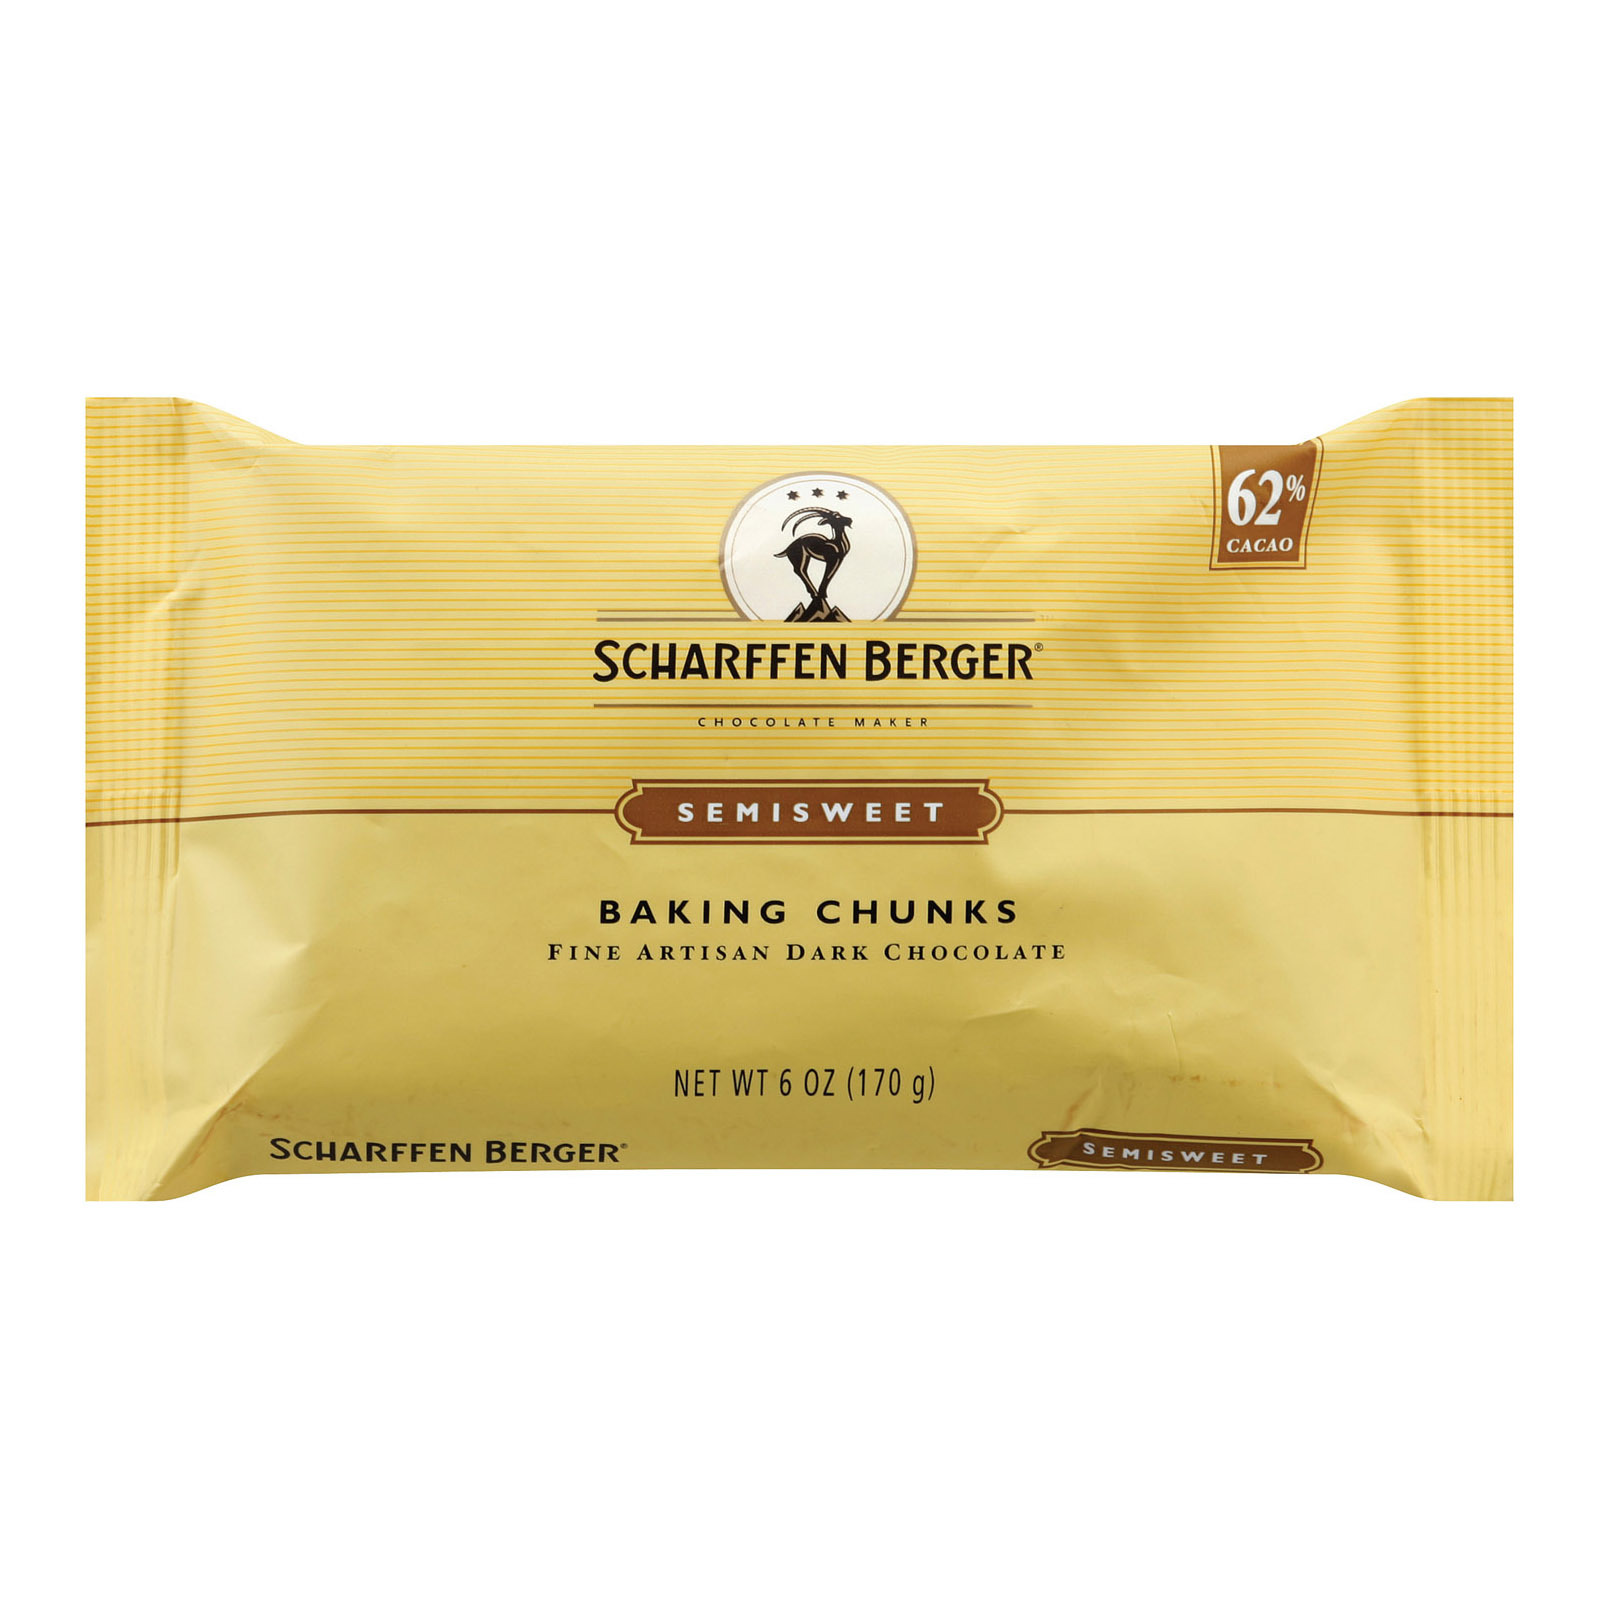 Scharffen Berger Semisweet 62 Percent Cacao Fine Artisan Dark Chocolate Baking Chunks - Case of 10 - 6 oz.